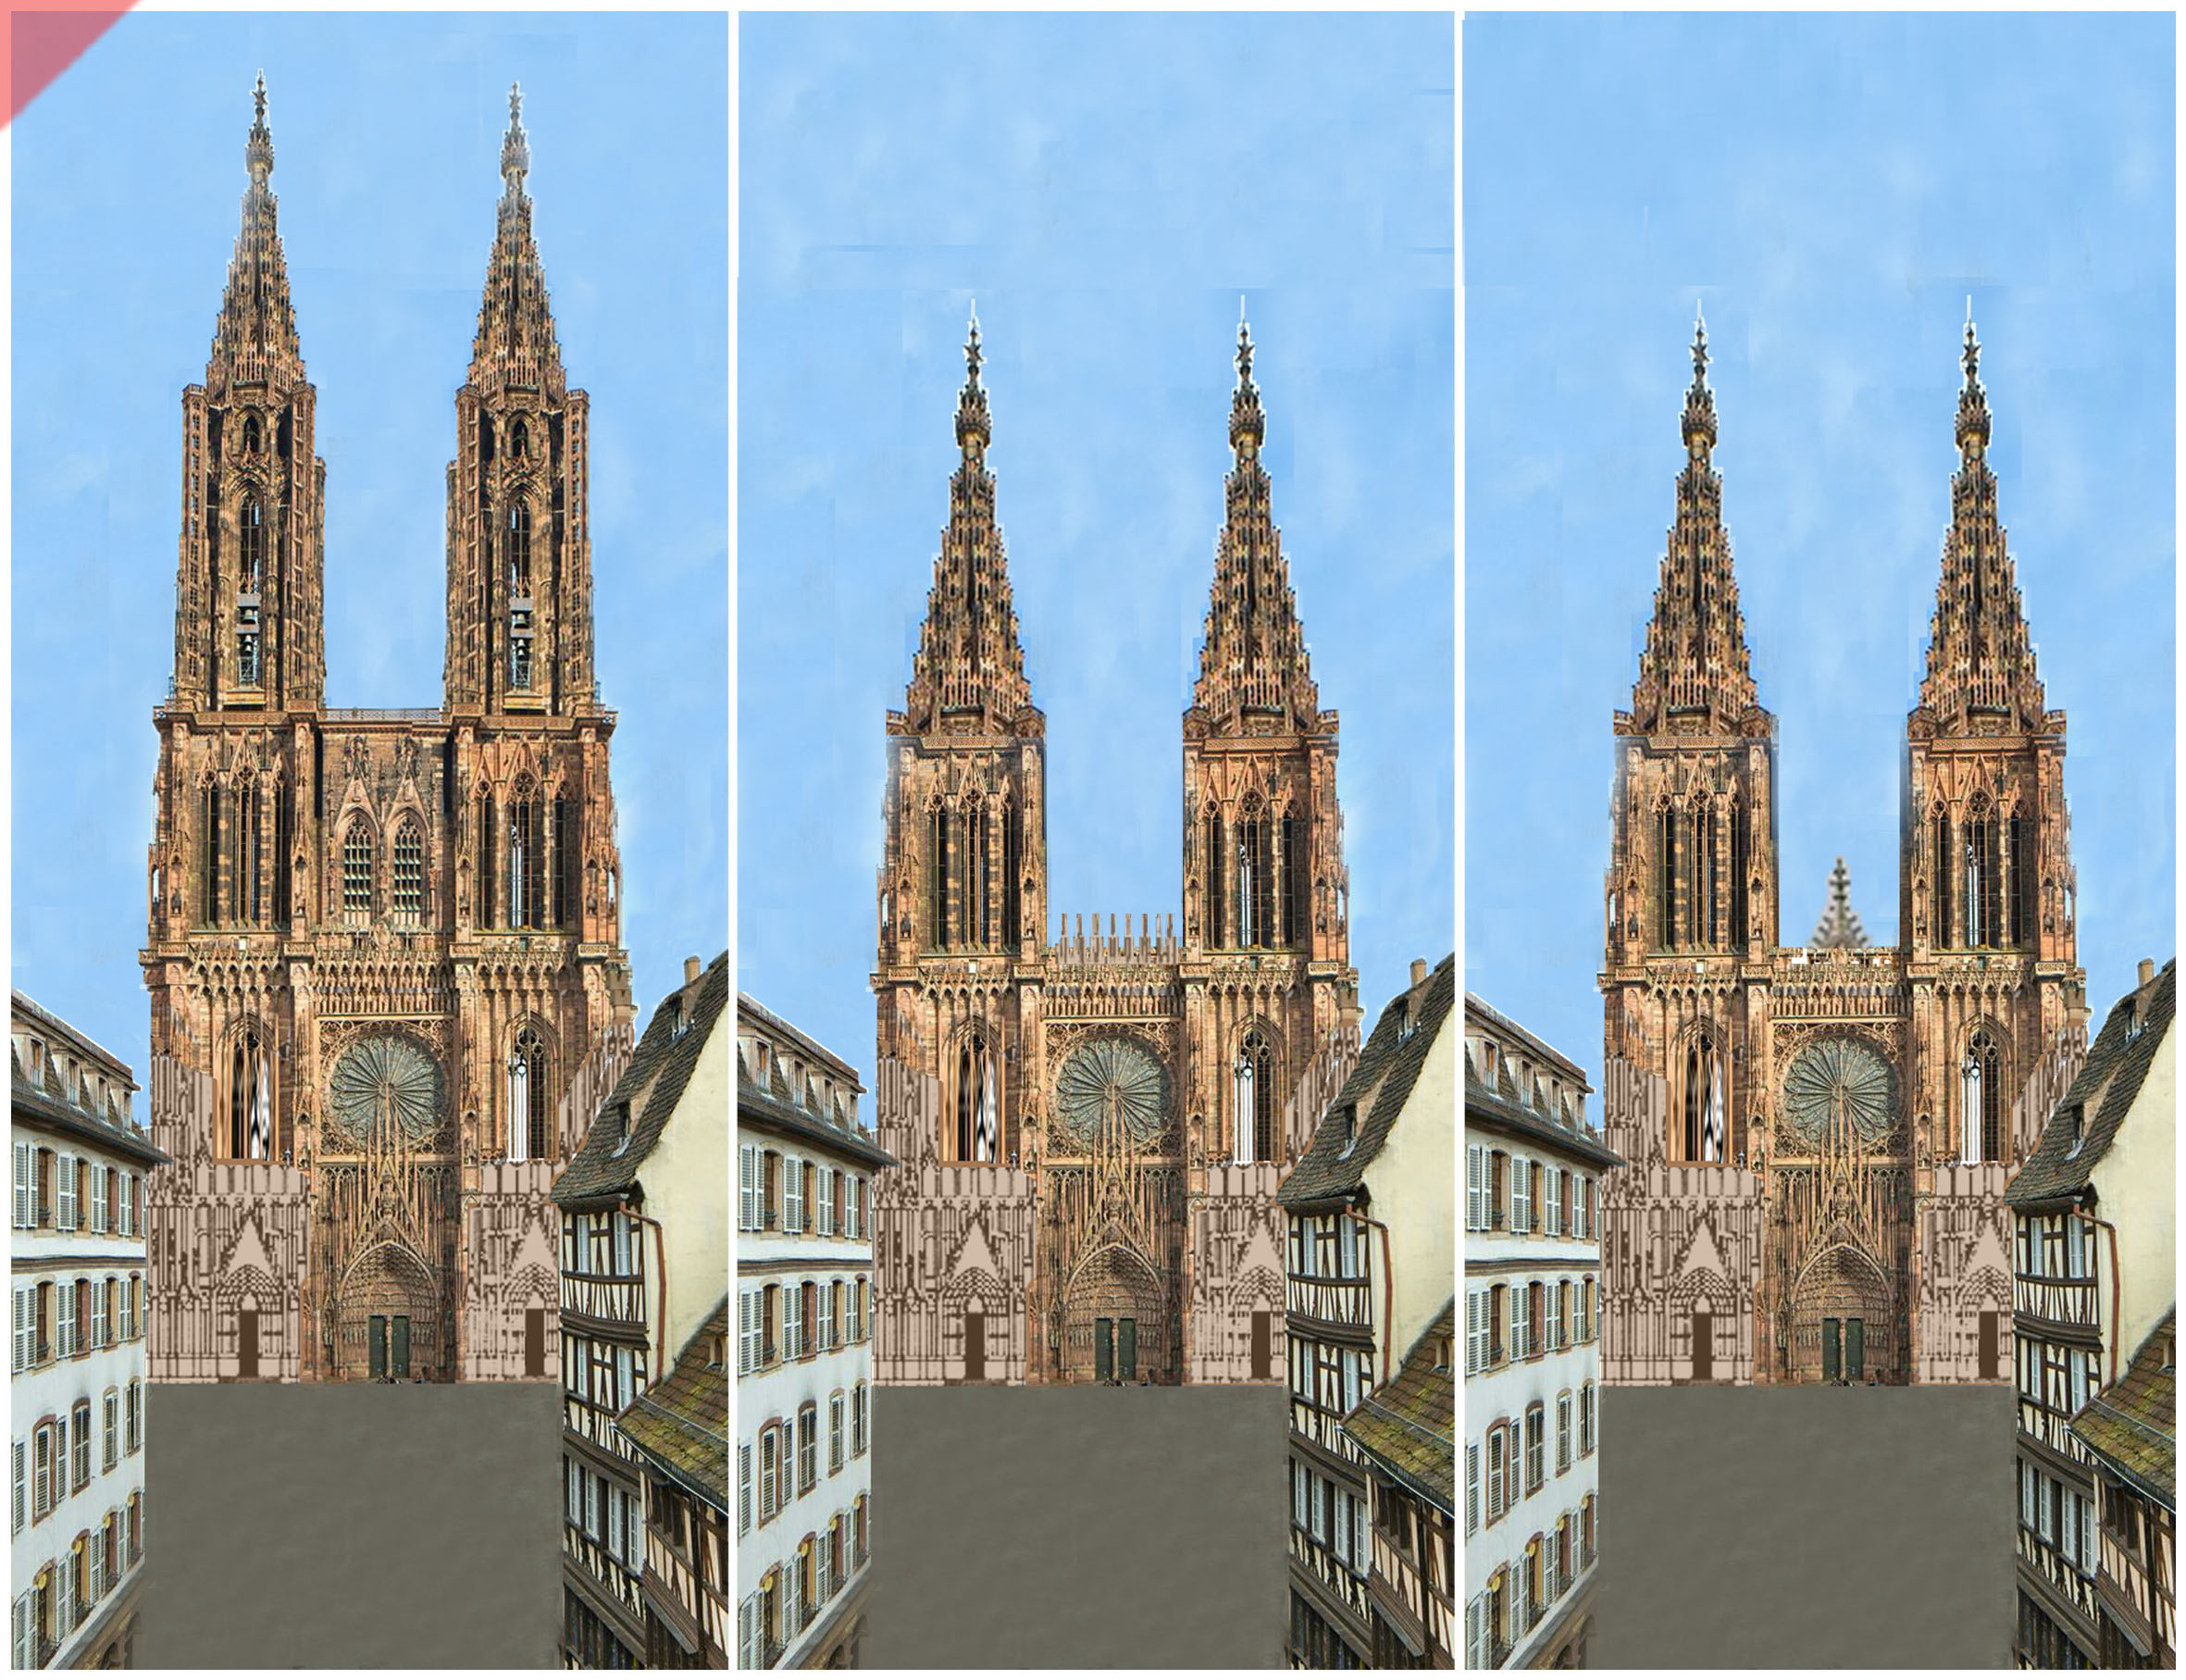 Strassburg-Münster-Cathédrale-tours-2-deux-prévu-toit-de-pierre-façade-ouest-Straßburg-cathedrale-2-two-towers-kathedrale-pitched-roof-stone-then-and-now